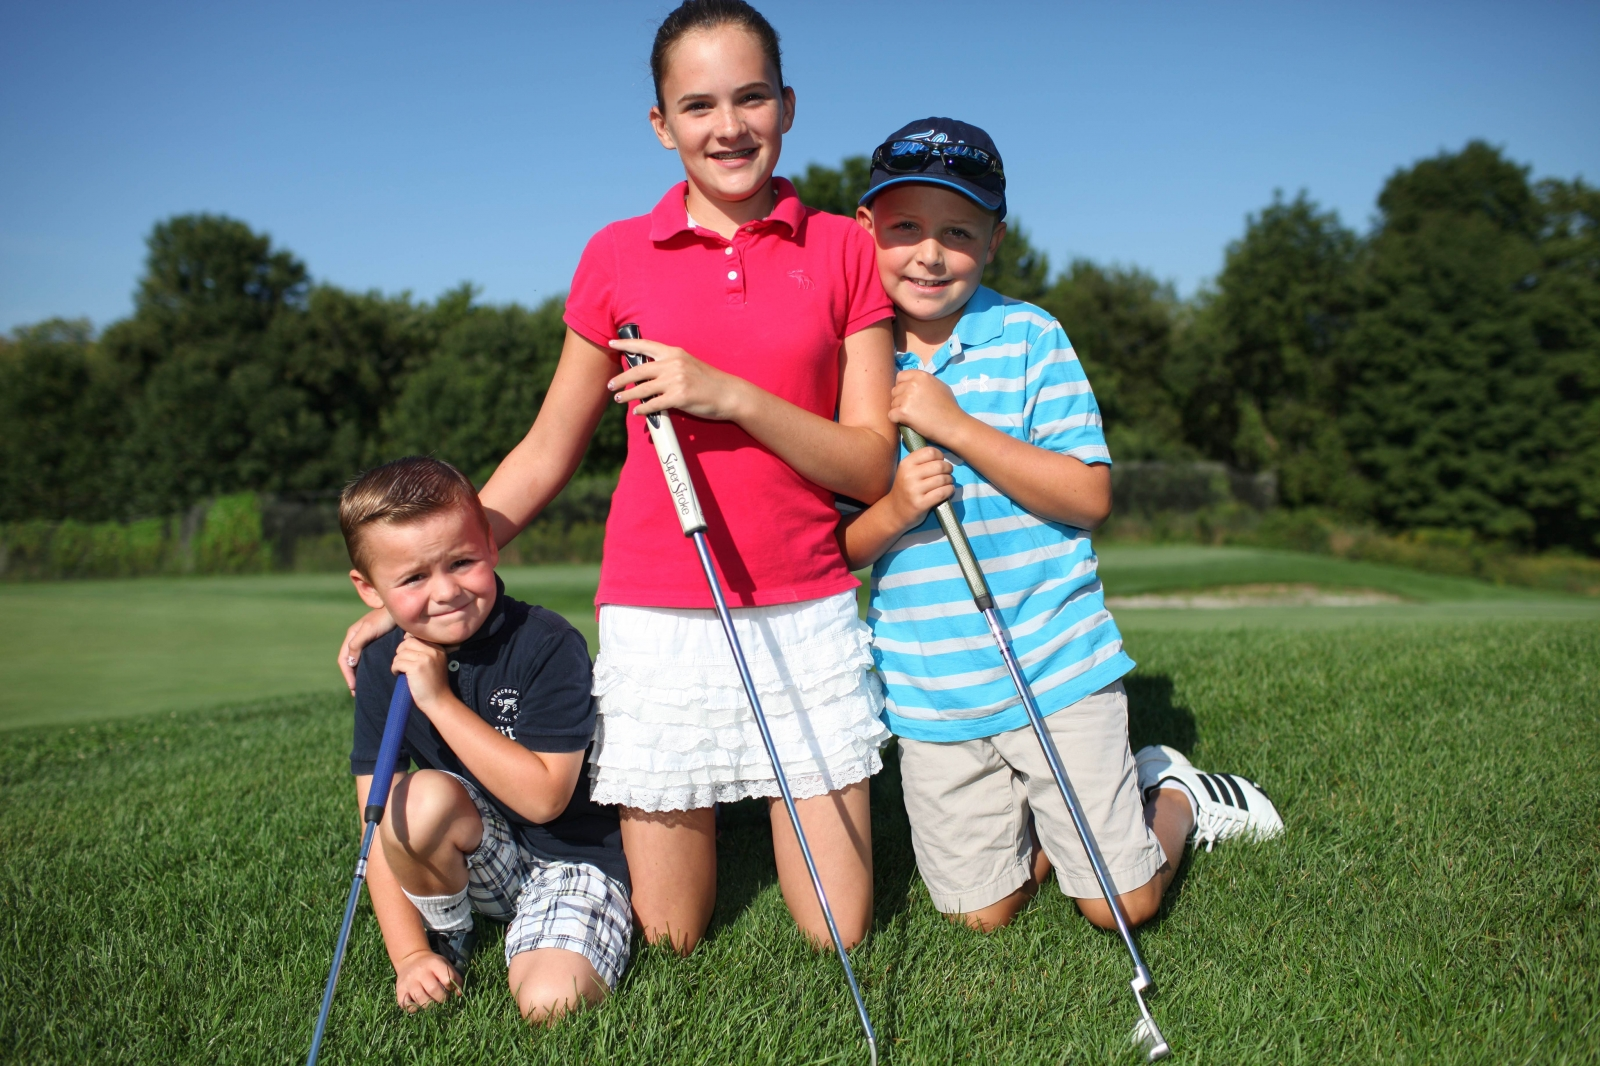 Three kids pose with their golf clubs at Centennial Golf Club in Carmel, NY